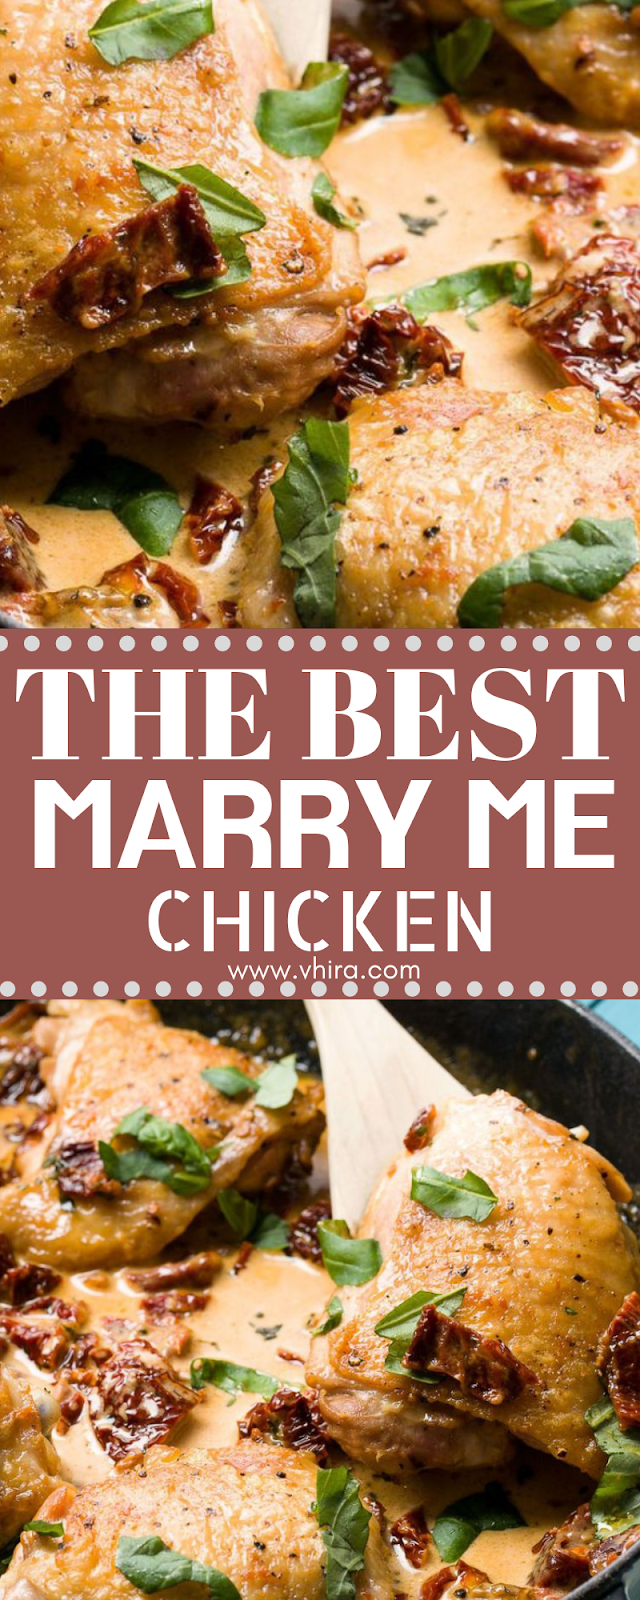 THE BEST MARRY ME CHICKEN #marrymechicken THE BEST MARRY ME CHICKEN #marrymechicken THE BEST MARRY ME CHICKEN #marrymechicken THE BEST MARRY ME CHICKEN #marrymechicken